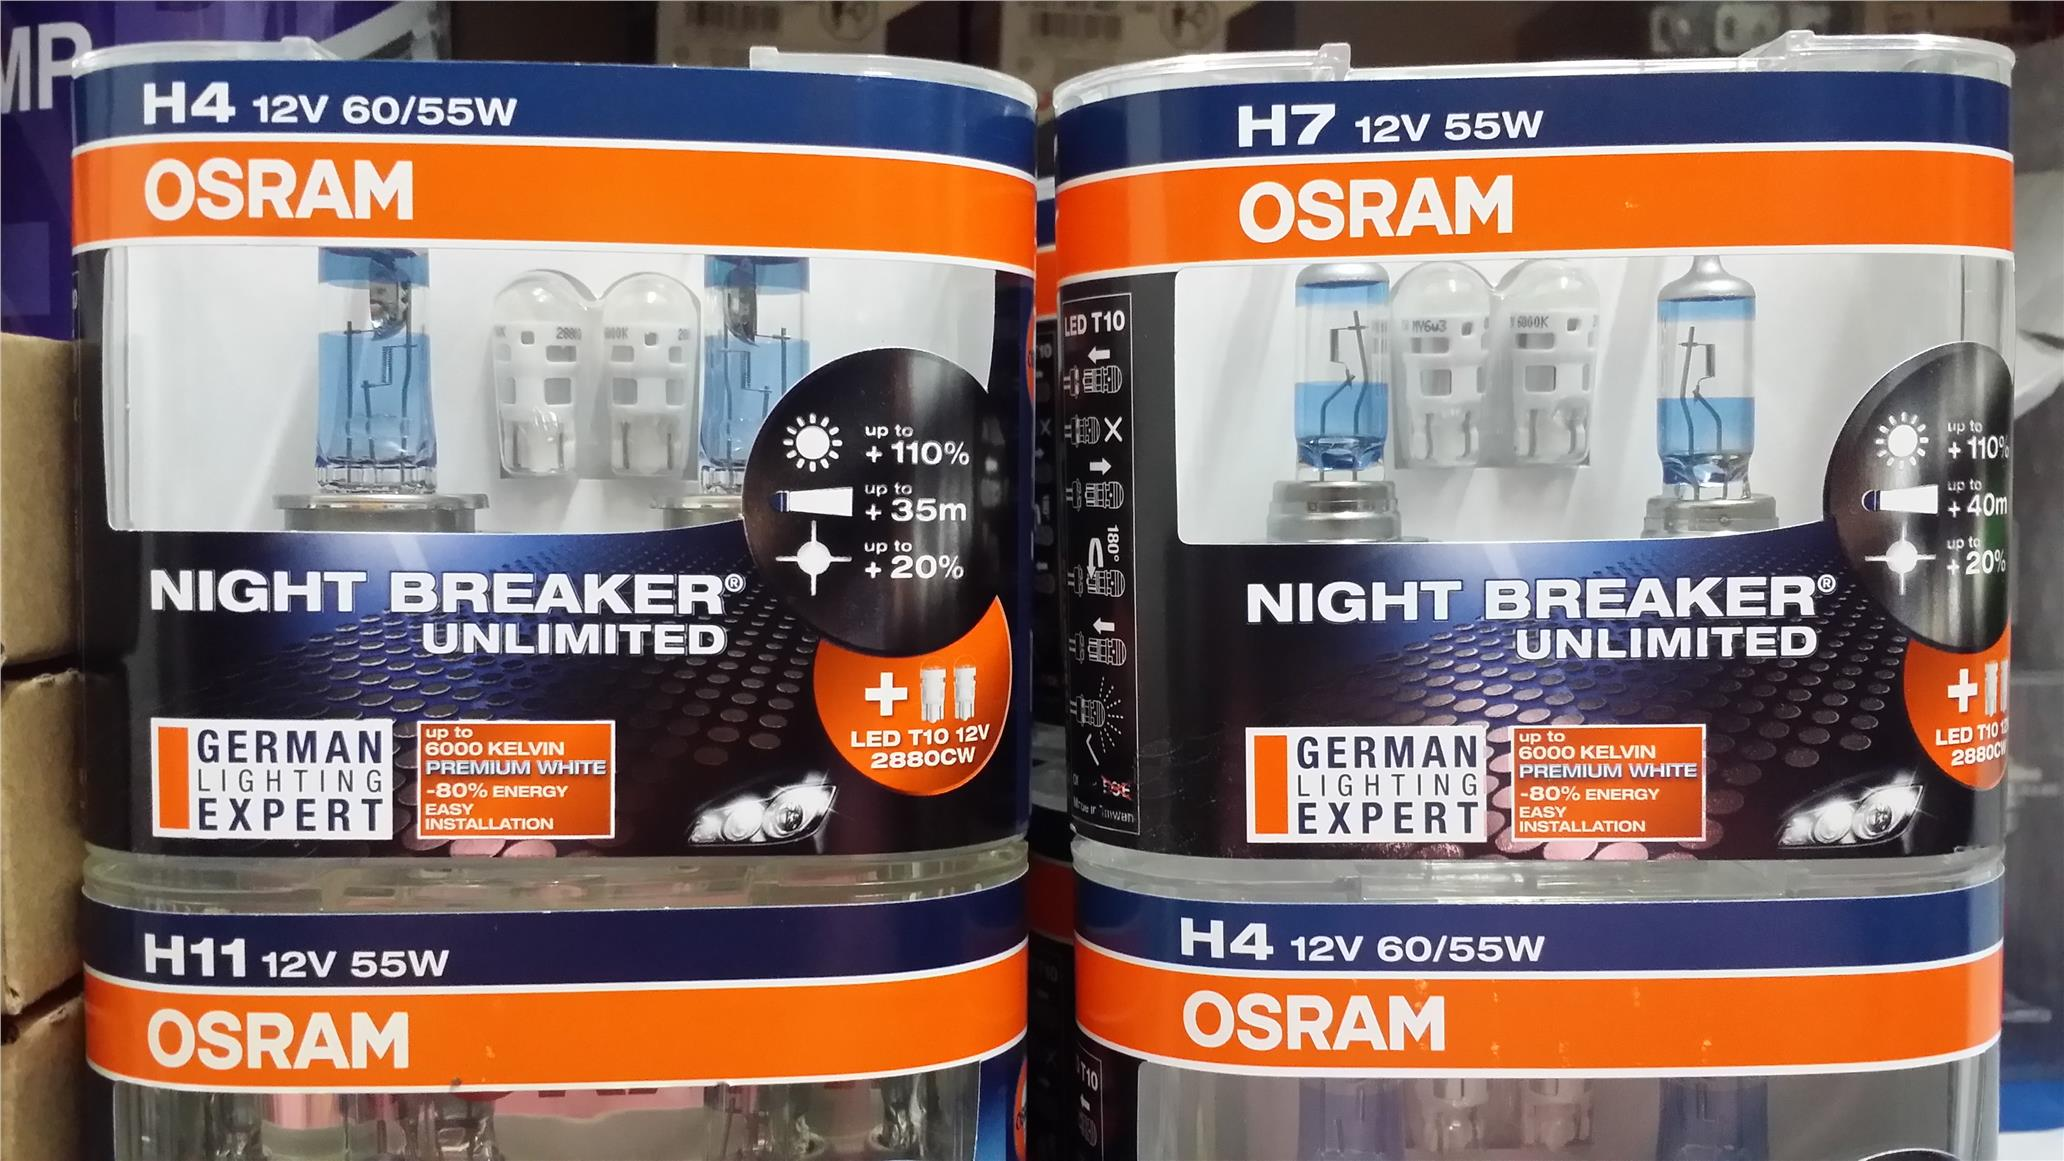 genuine osram night breaker unlimit end 11 22 2017 6 49 pm. Black Bedroom Furniture Sets. Home Design Ideas